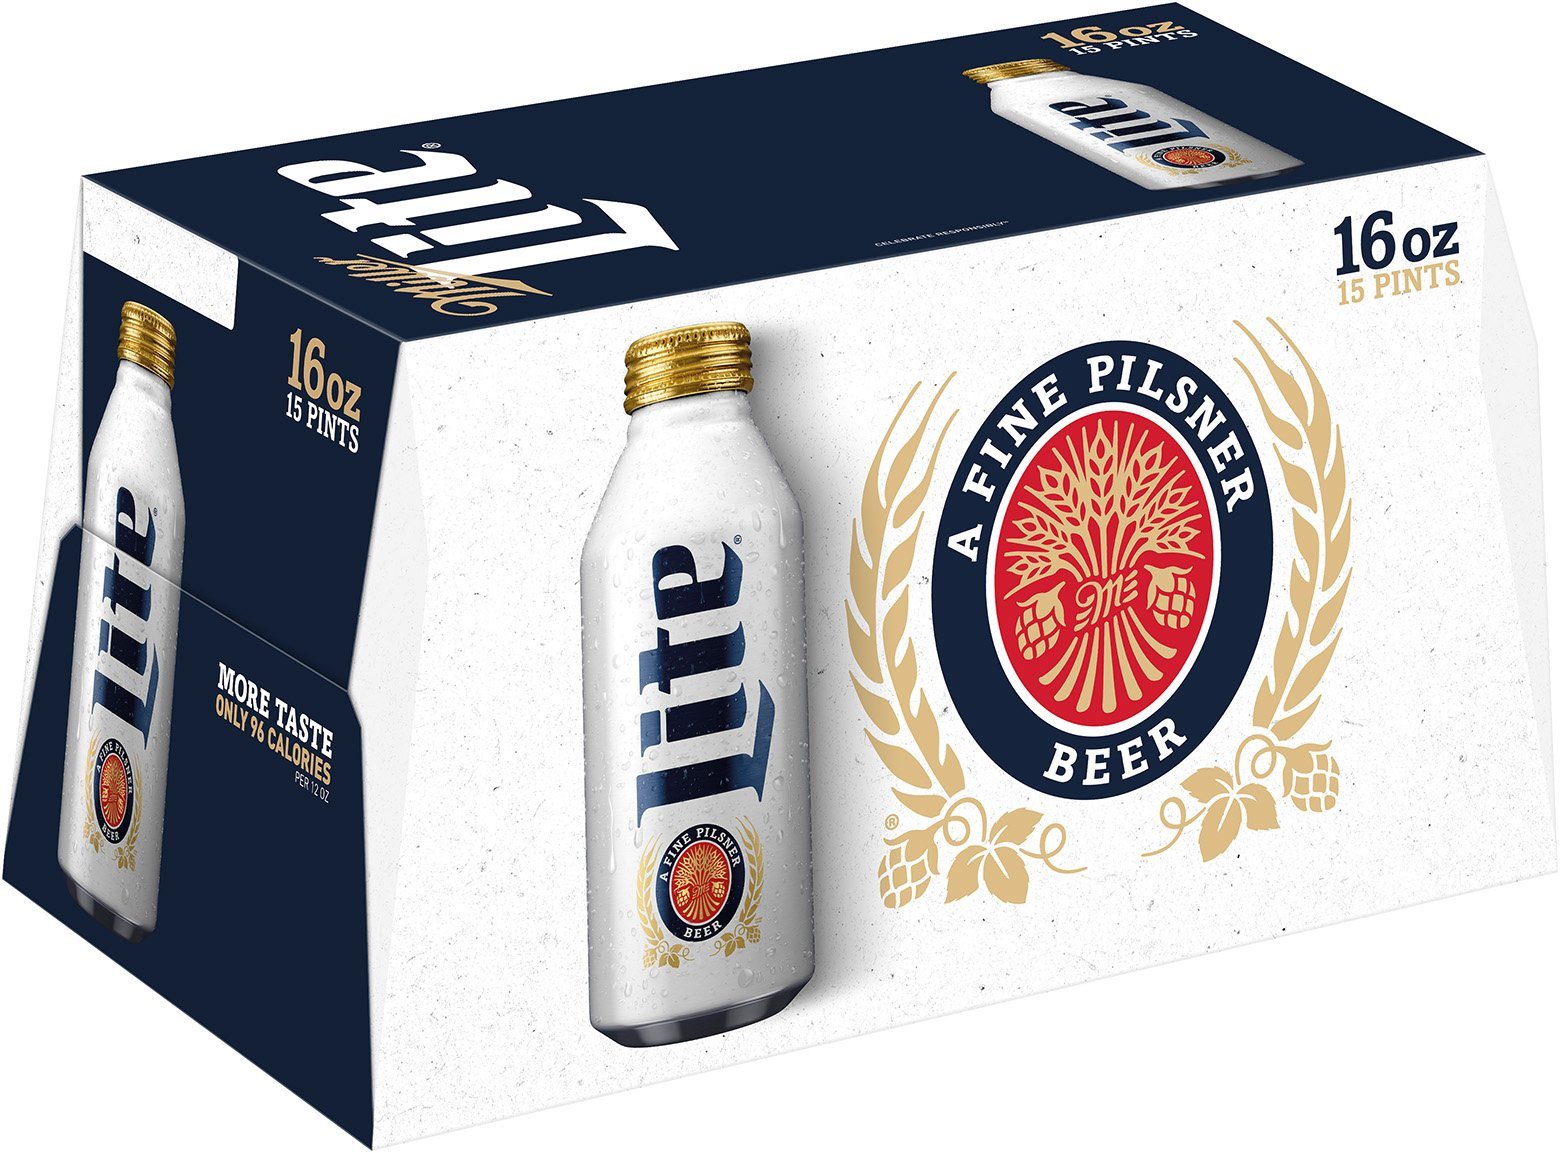 Miller Lite Beer 16 Oz Resealable Aluminum Bottles Shop Beer At H E B